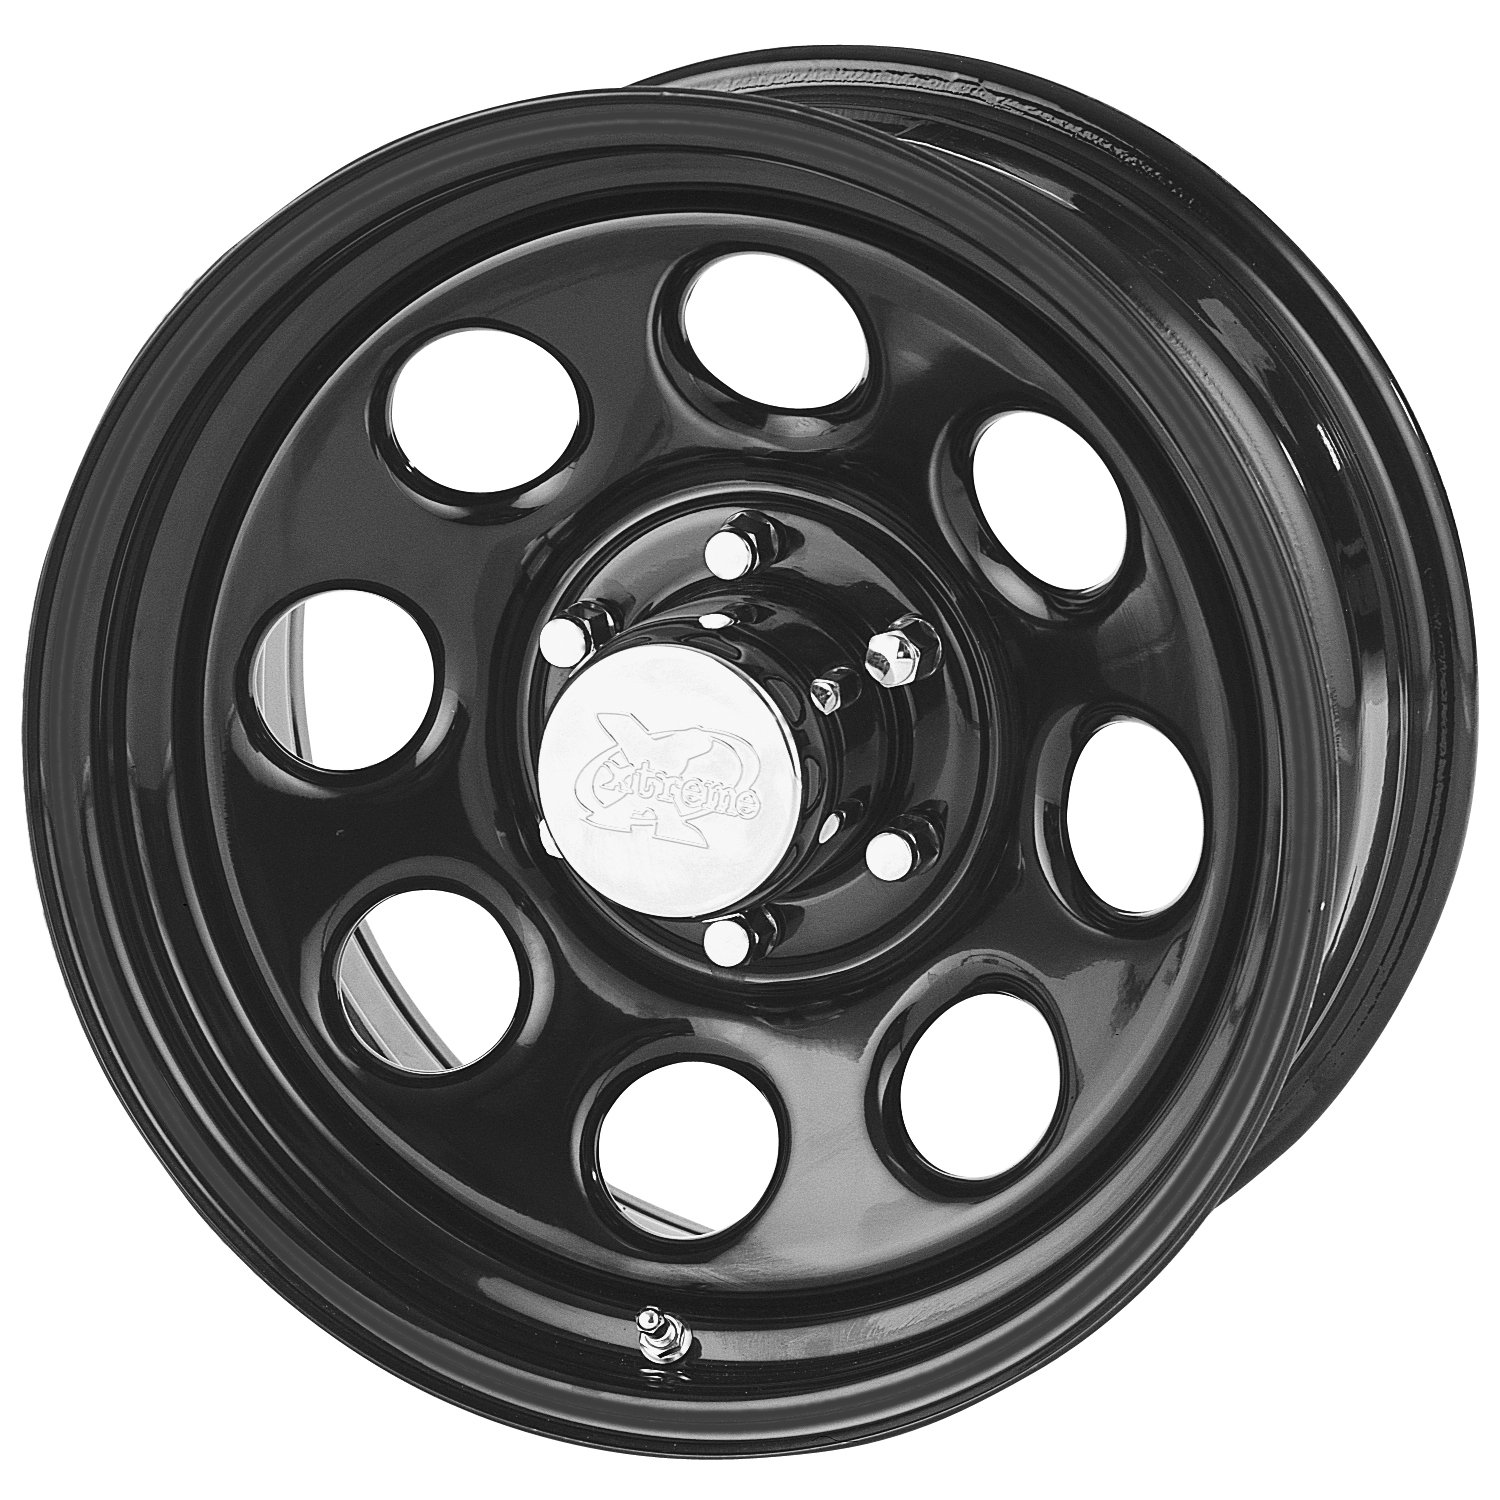 Pro Comp Steel Wheels Series 97 Wheel with Gloss Black Finish (15x8/5x5.5)